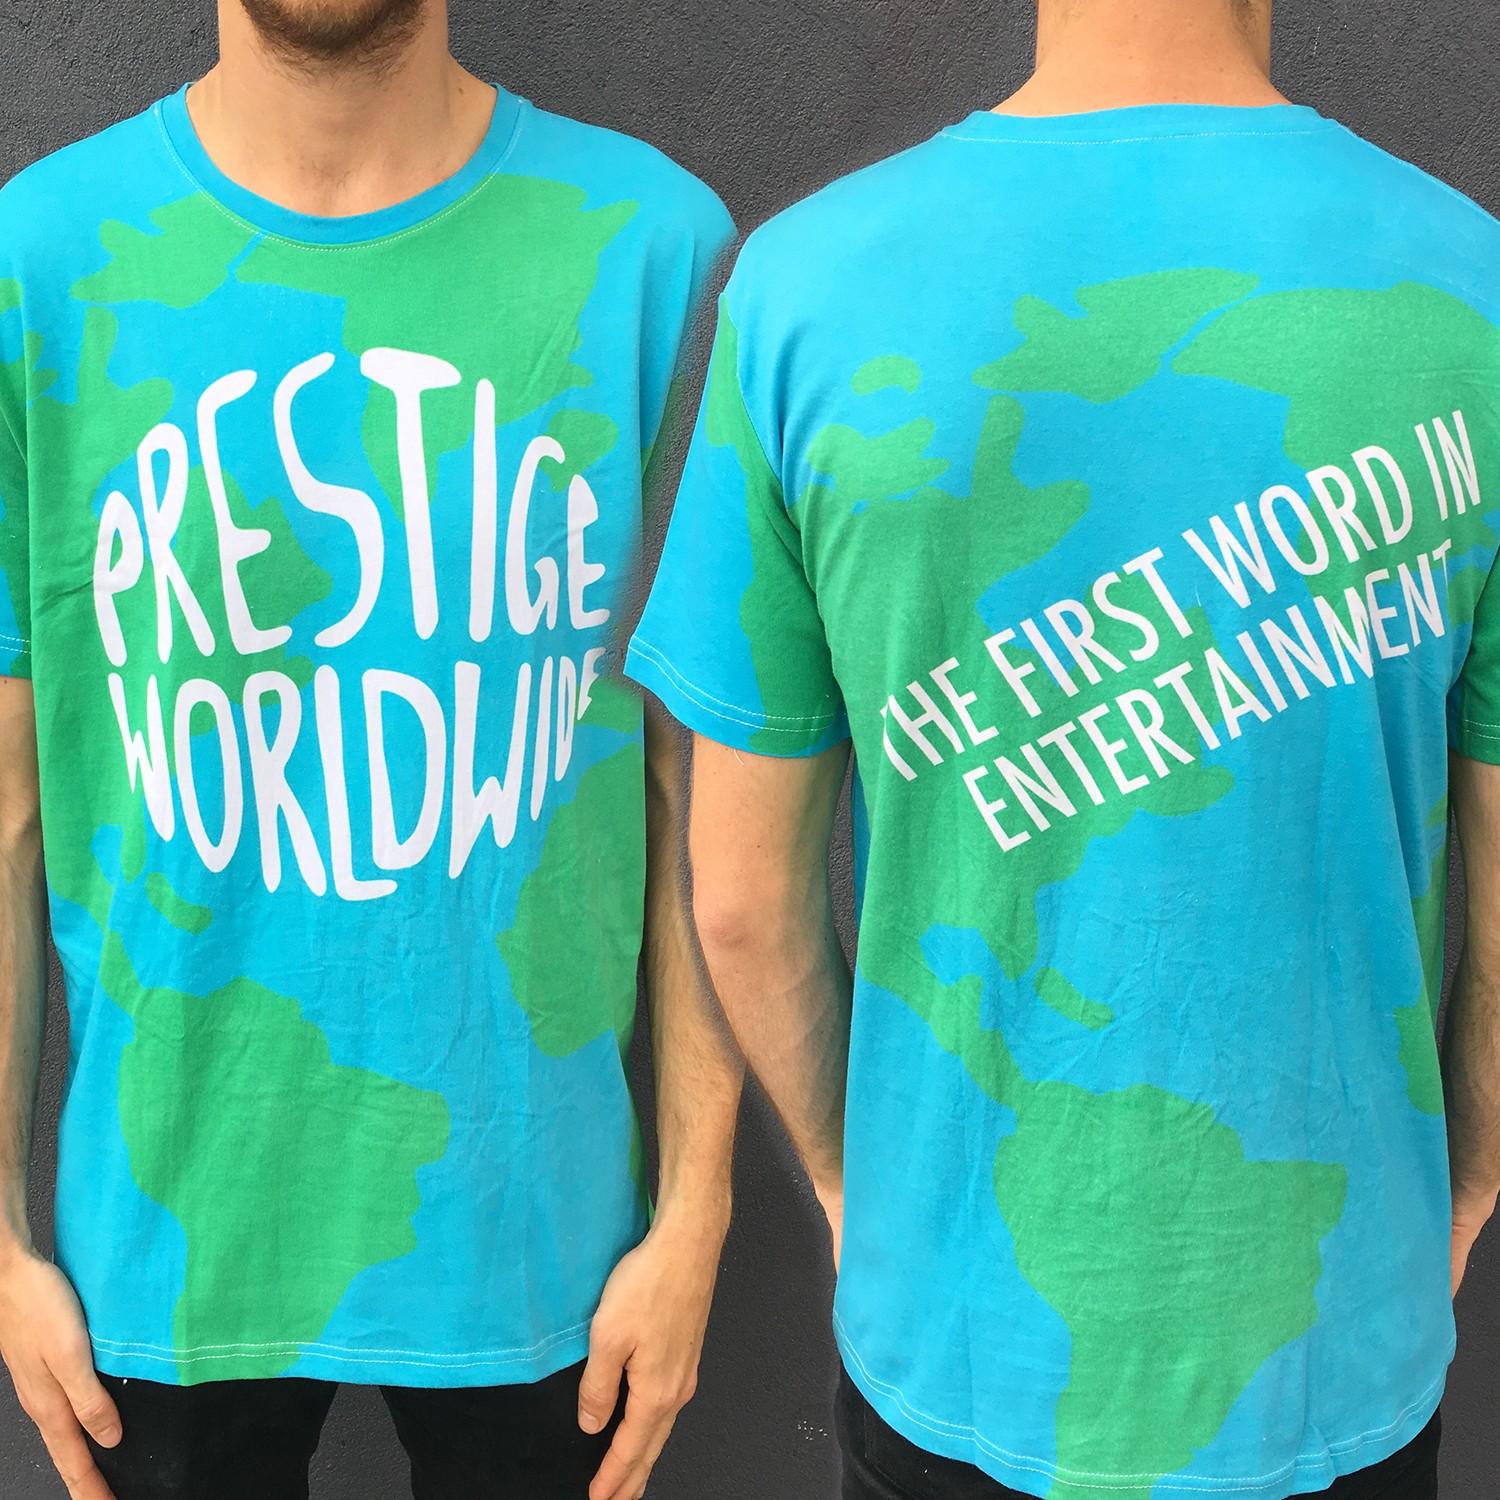 FULL PRINT PRESTIGE WORLDWIDE TEE